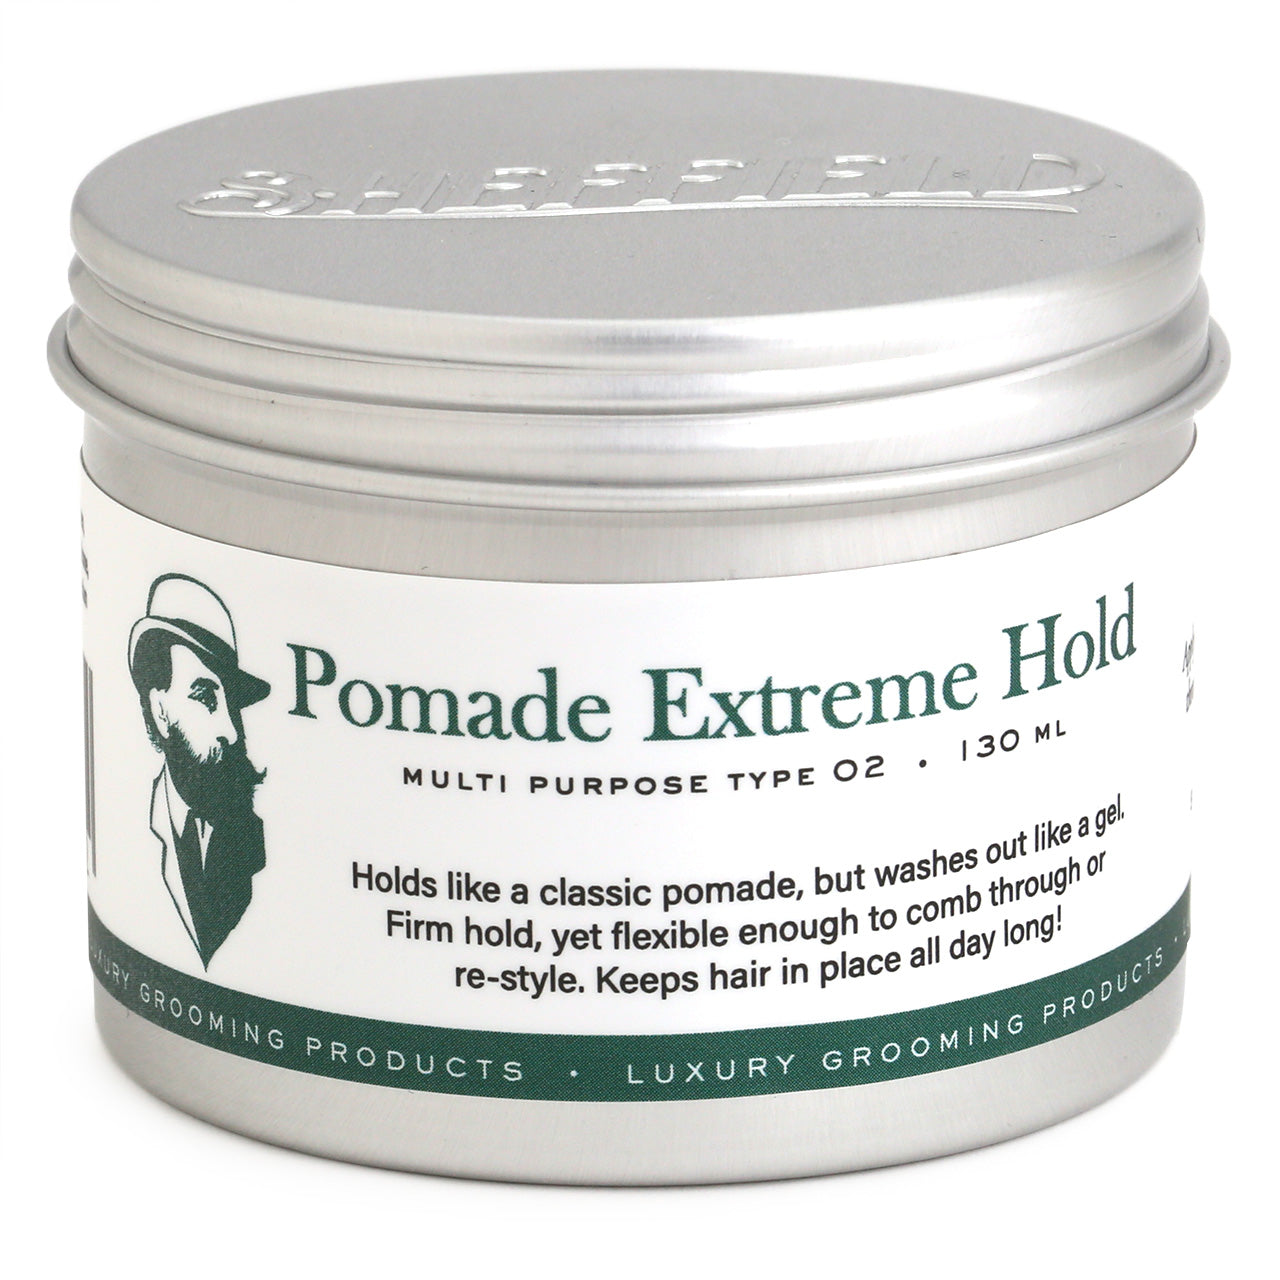 Sheffield Pomade Extreme Hold, 130ml Front of tin